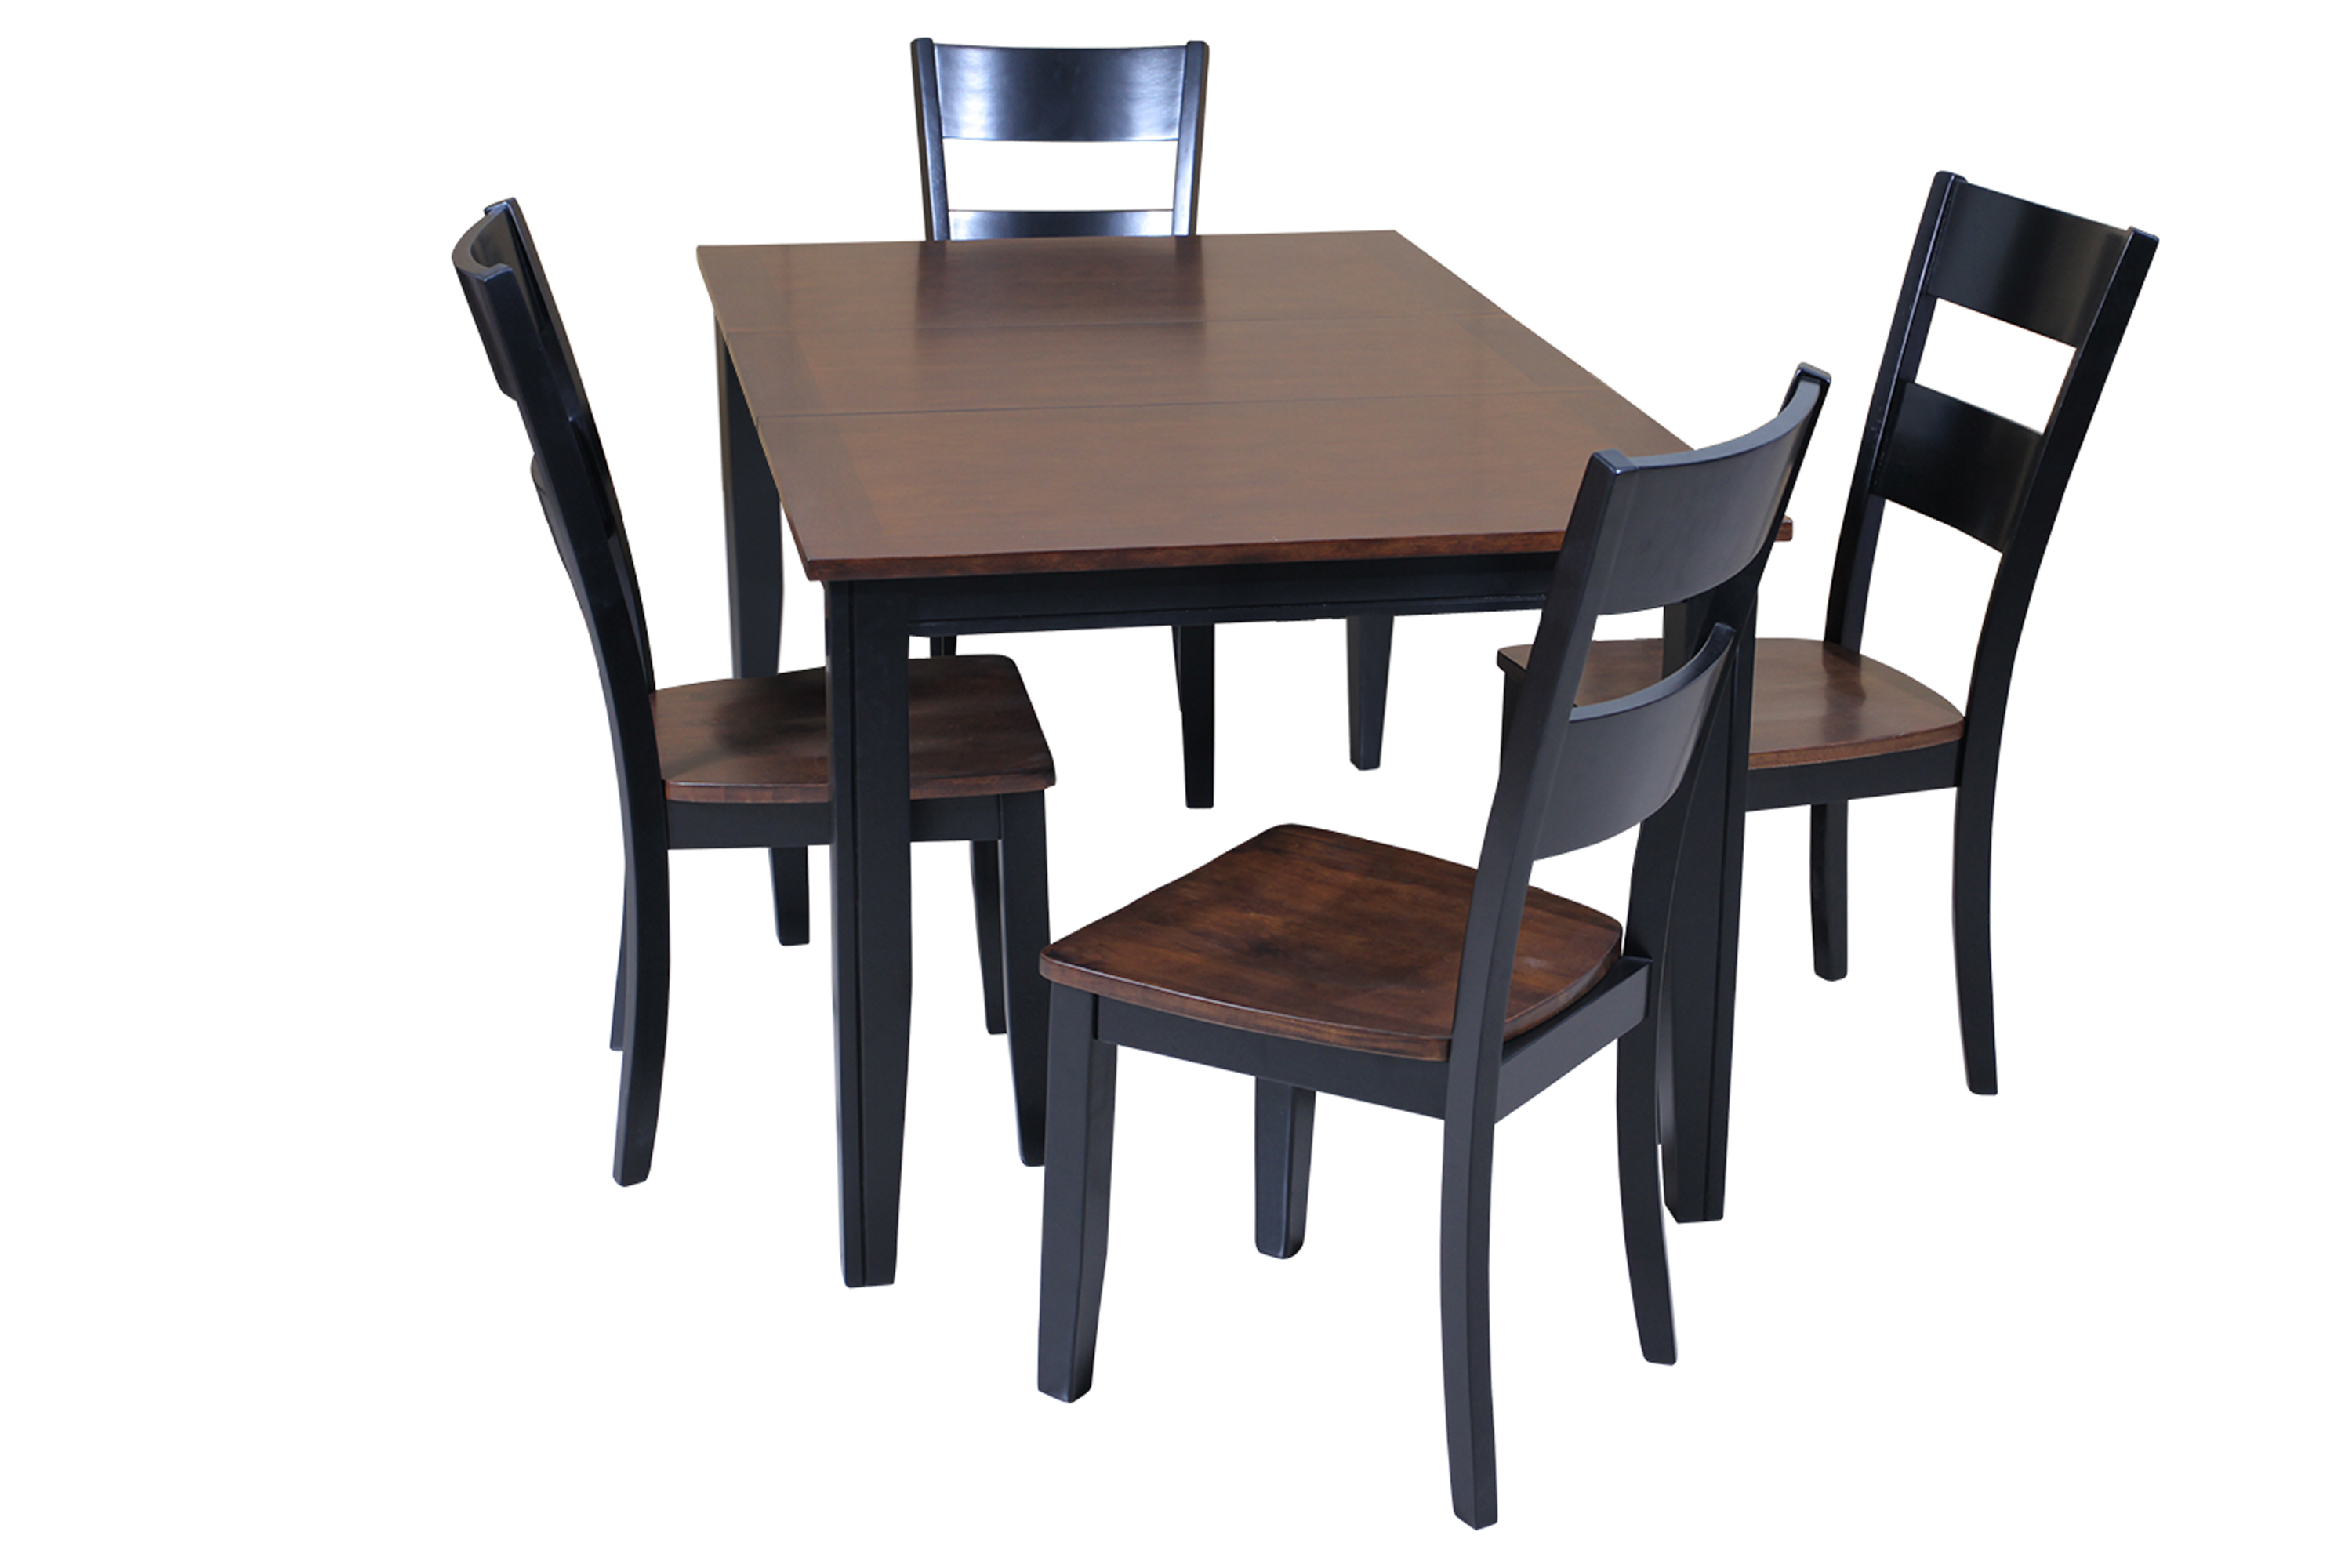 Adan 5 Piece Solid Wood Dining Sets (Set Of 5) With Regard To Most Current Ttp Furnish (#6 of 20)